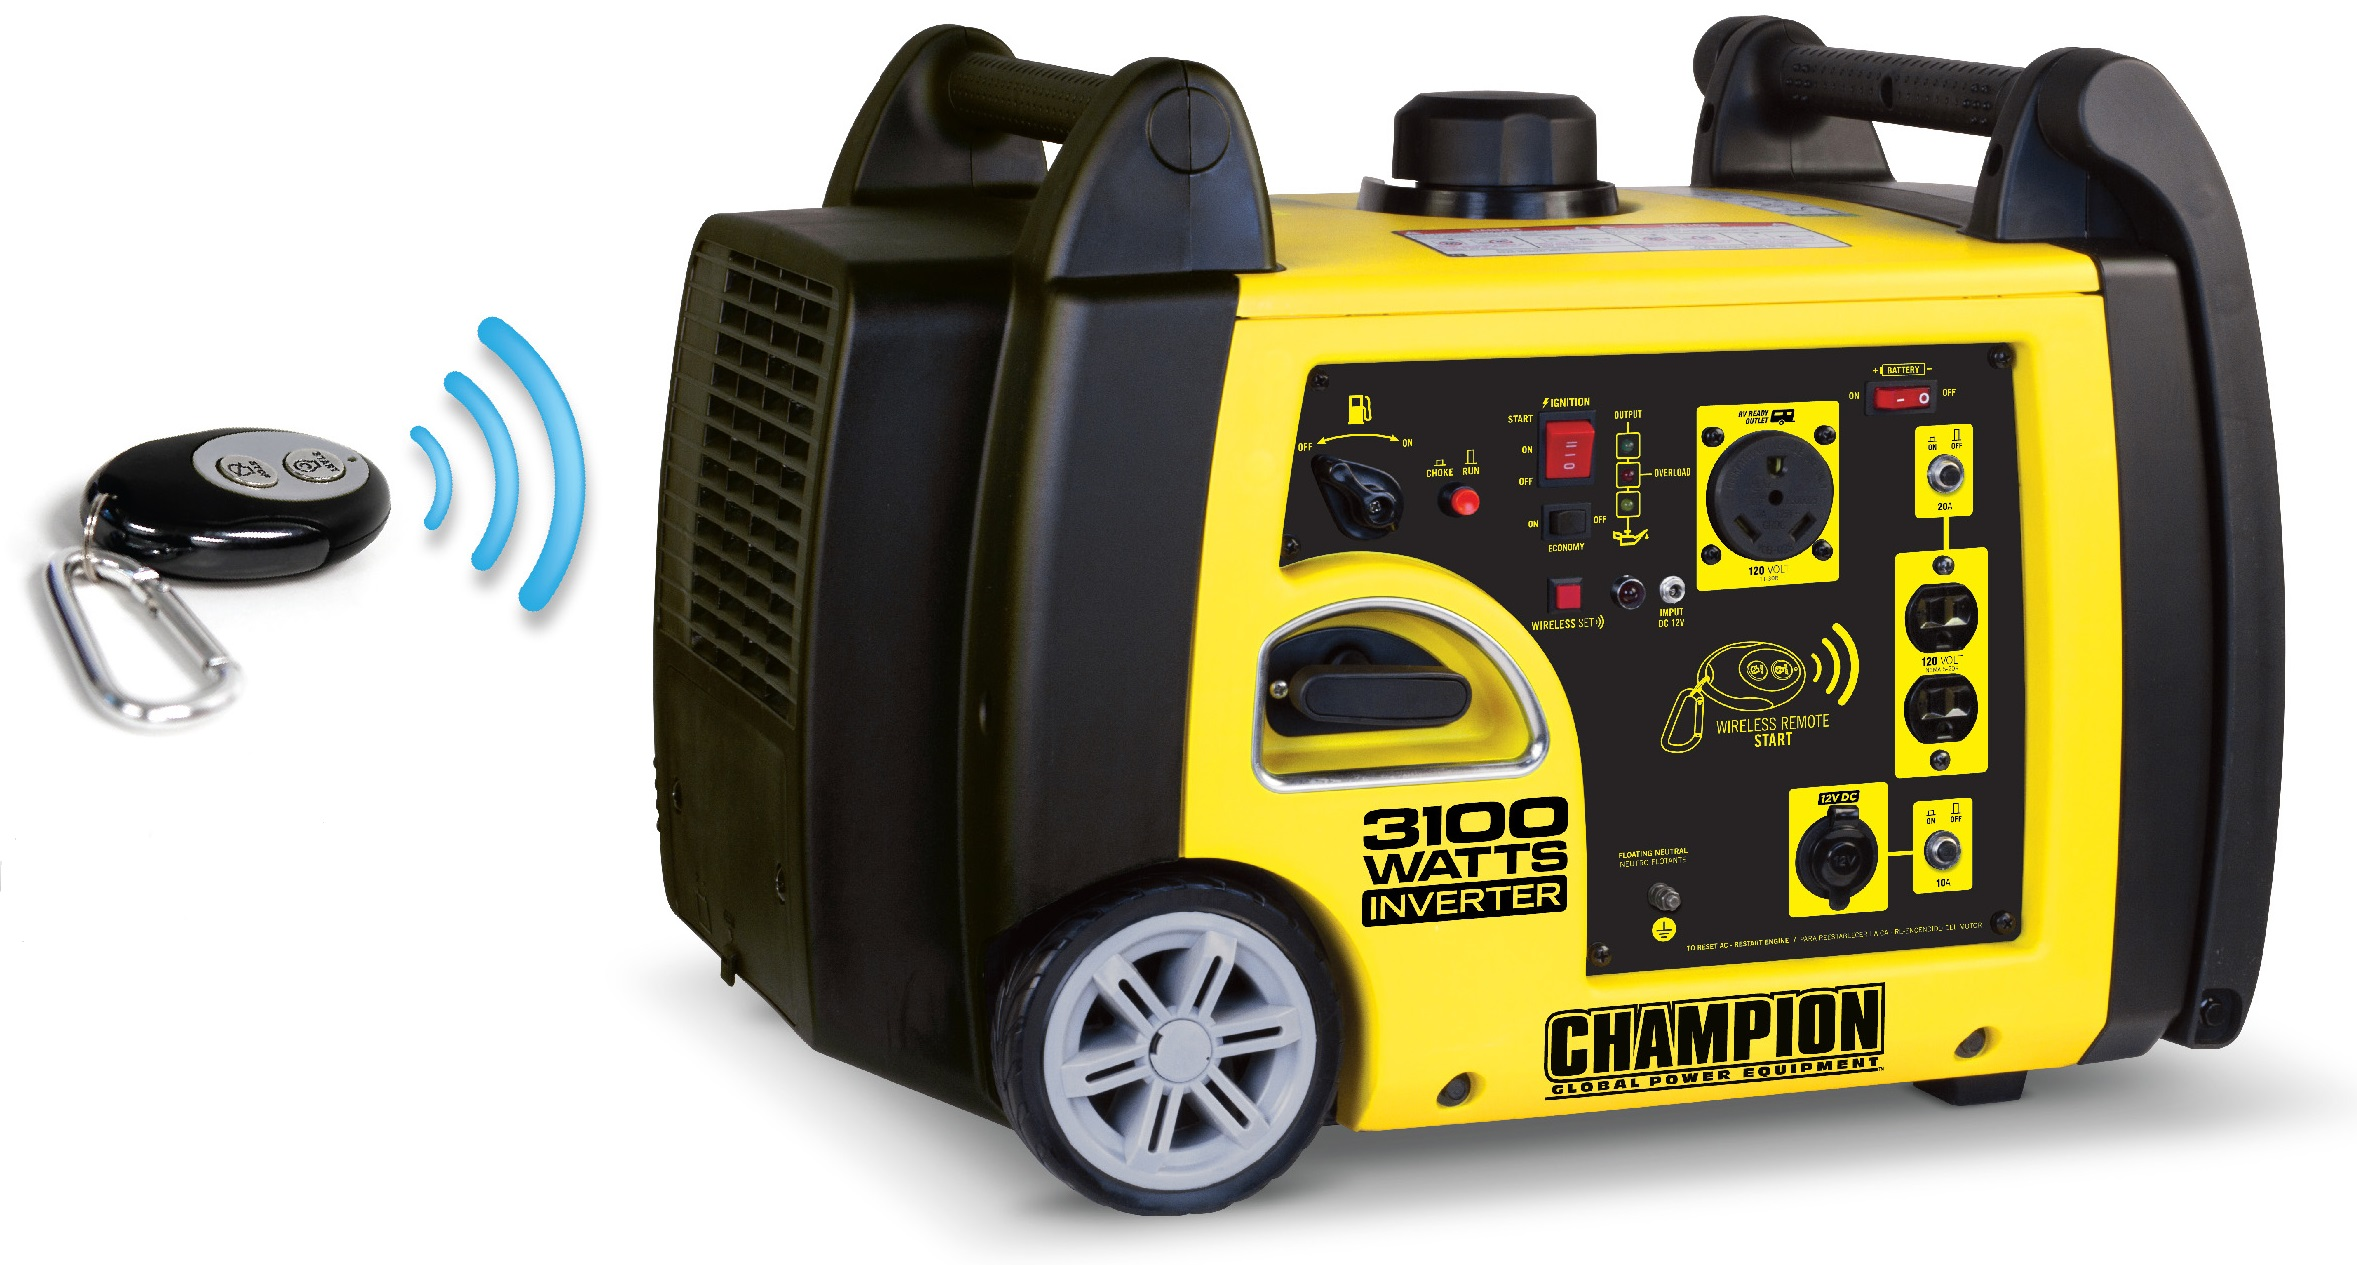 Champion Inverter Generator 3100 Watt Remote Starting 58 dB